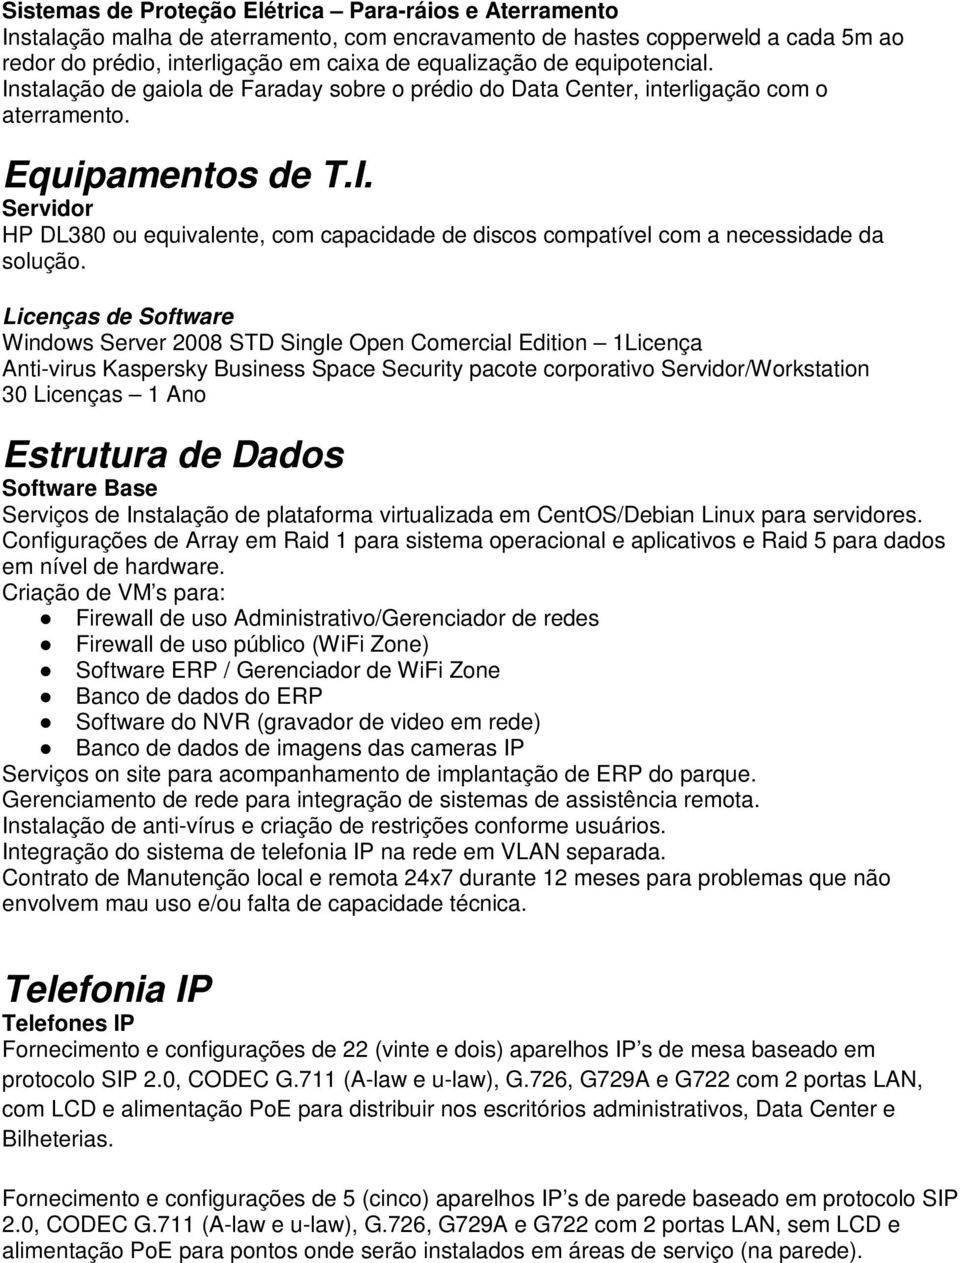 Licenças de Software Windows Server 2008 STD Single Open Comercial Edition 1Licença Anti-virus Kaspersky Business Space Security pacote corporativo Servidor/Workstation 30 Licenças 1 Ano Estrutura de